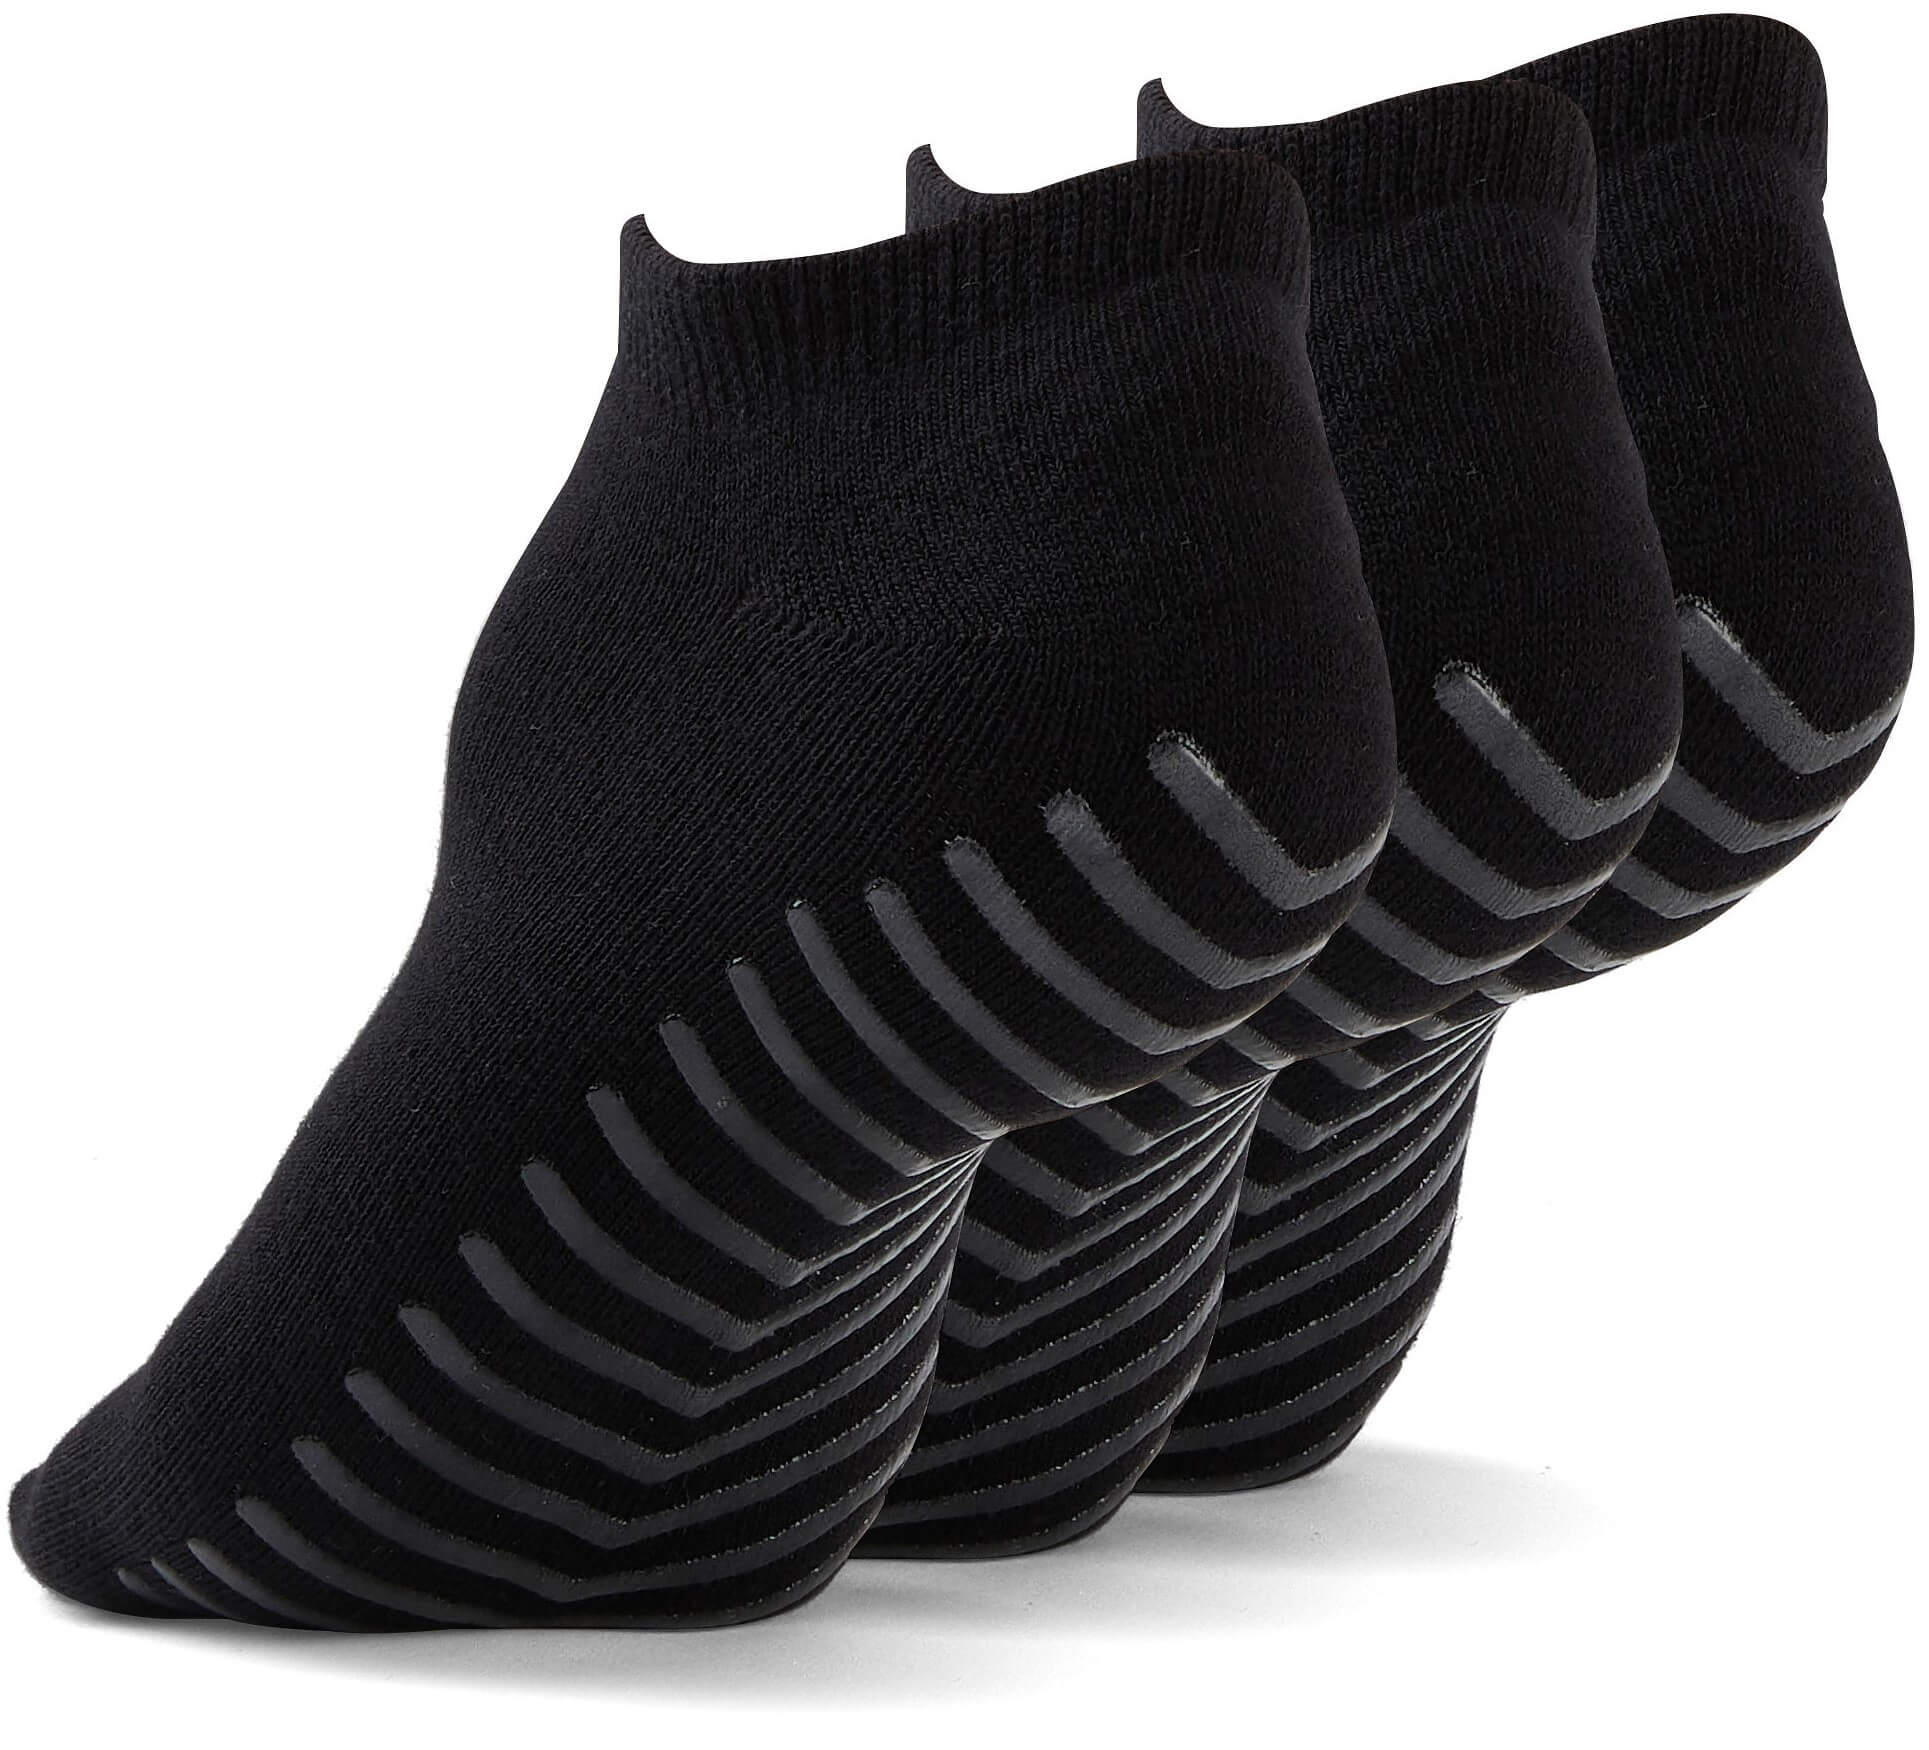 Gripjoy Men's Ankle Grip Socks Black 3-Pack - Gripjoy Socks